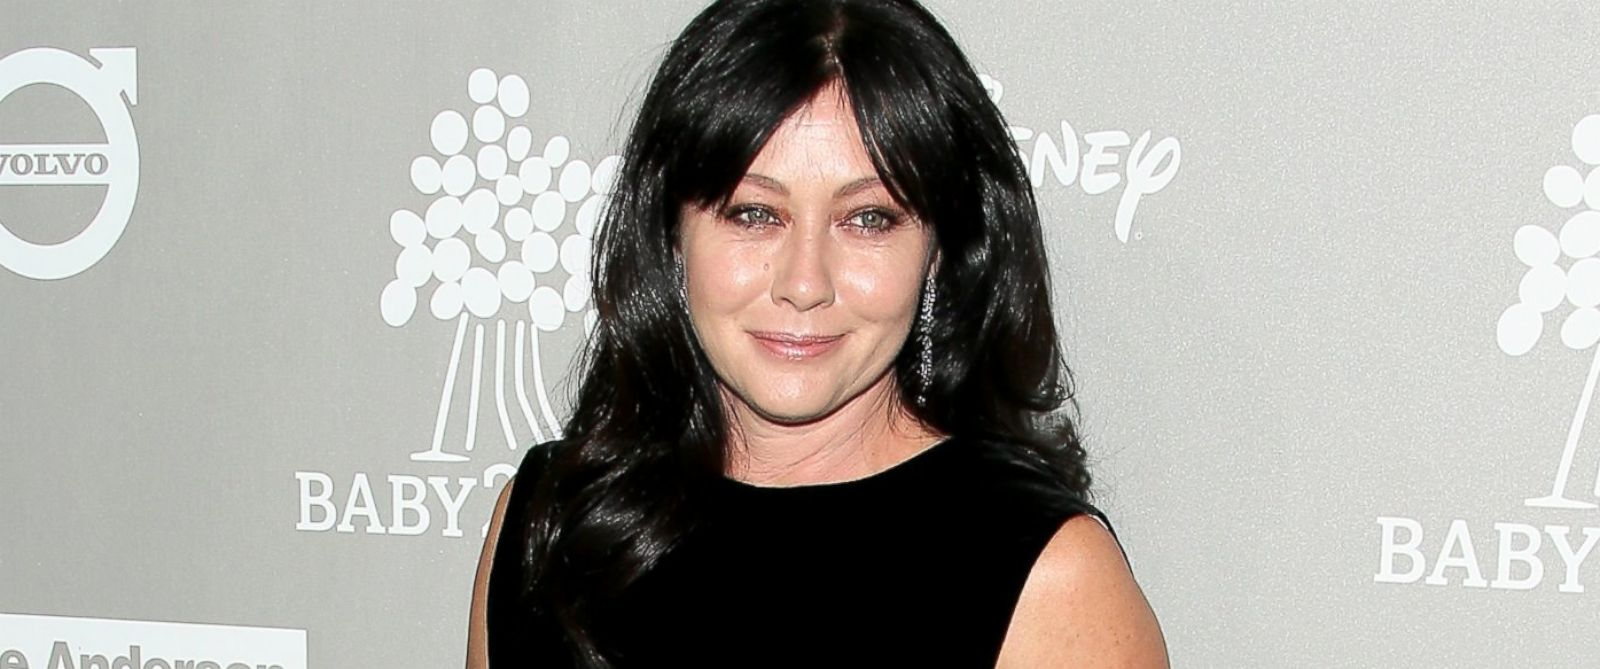 Shannen Doherty widescreen wallpapers